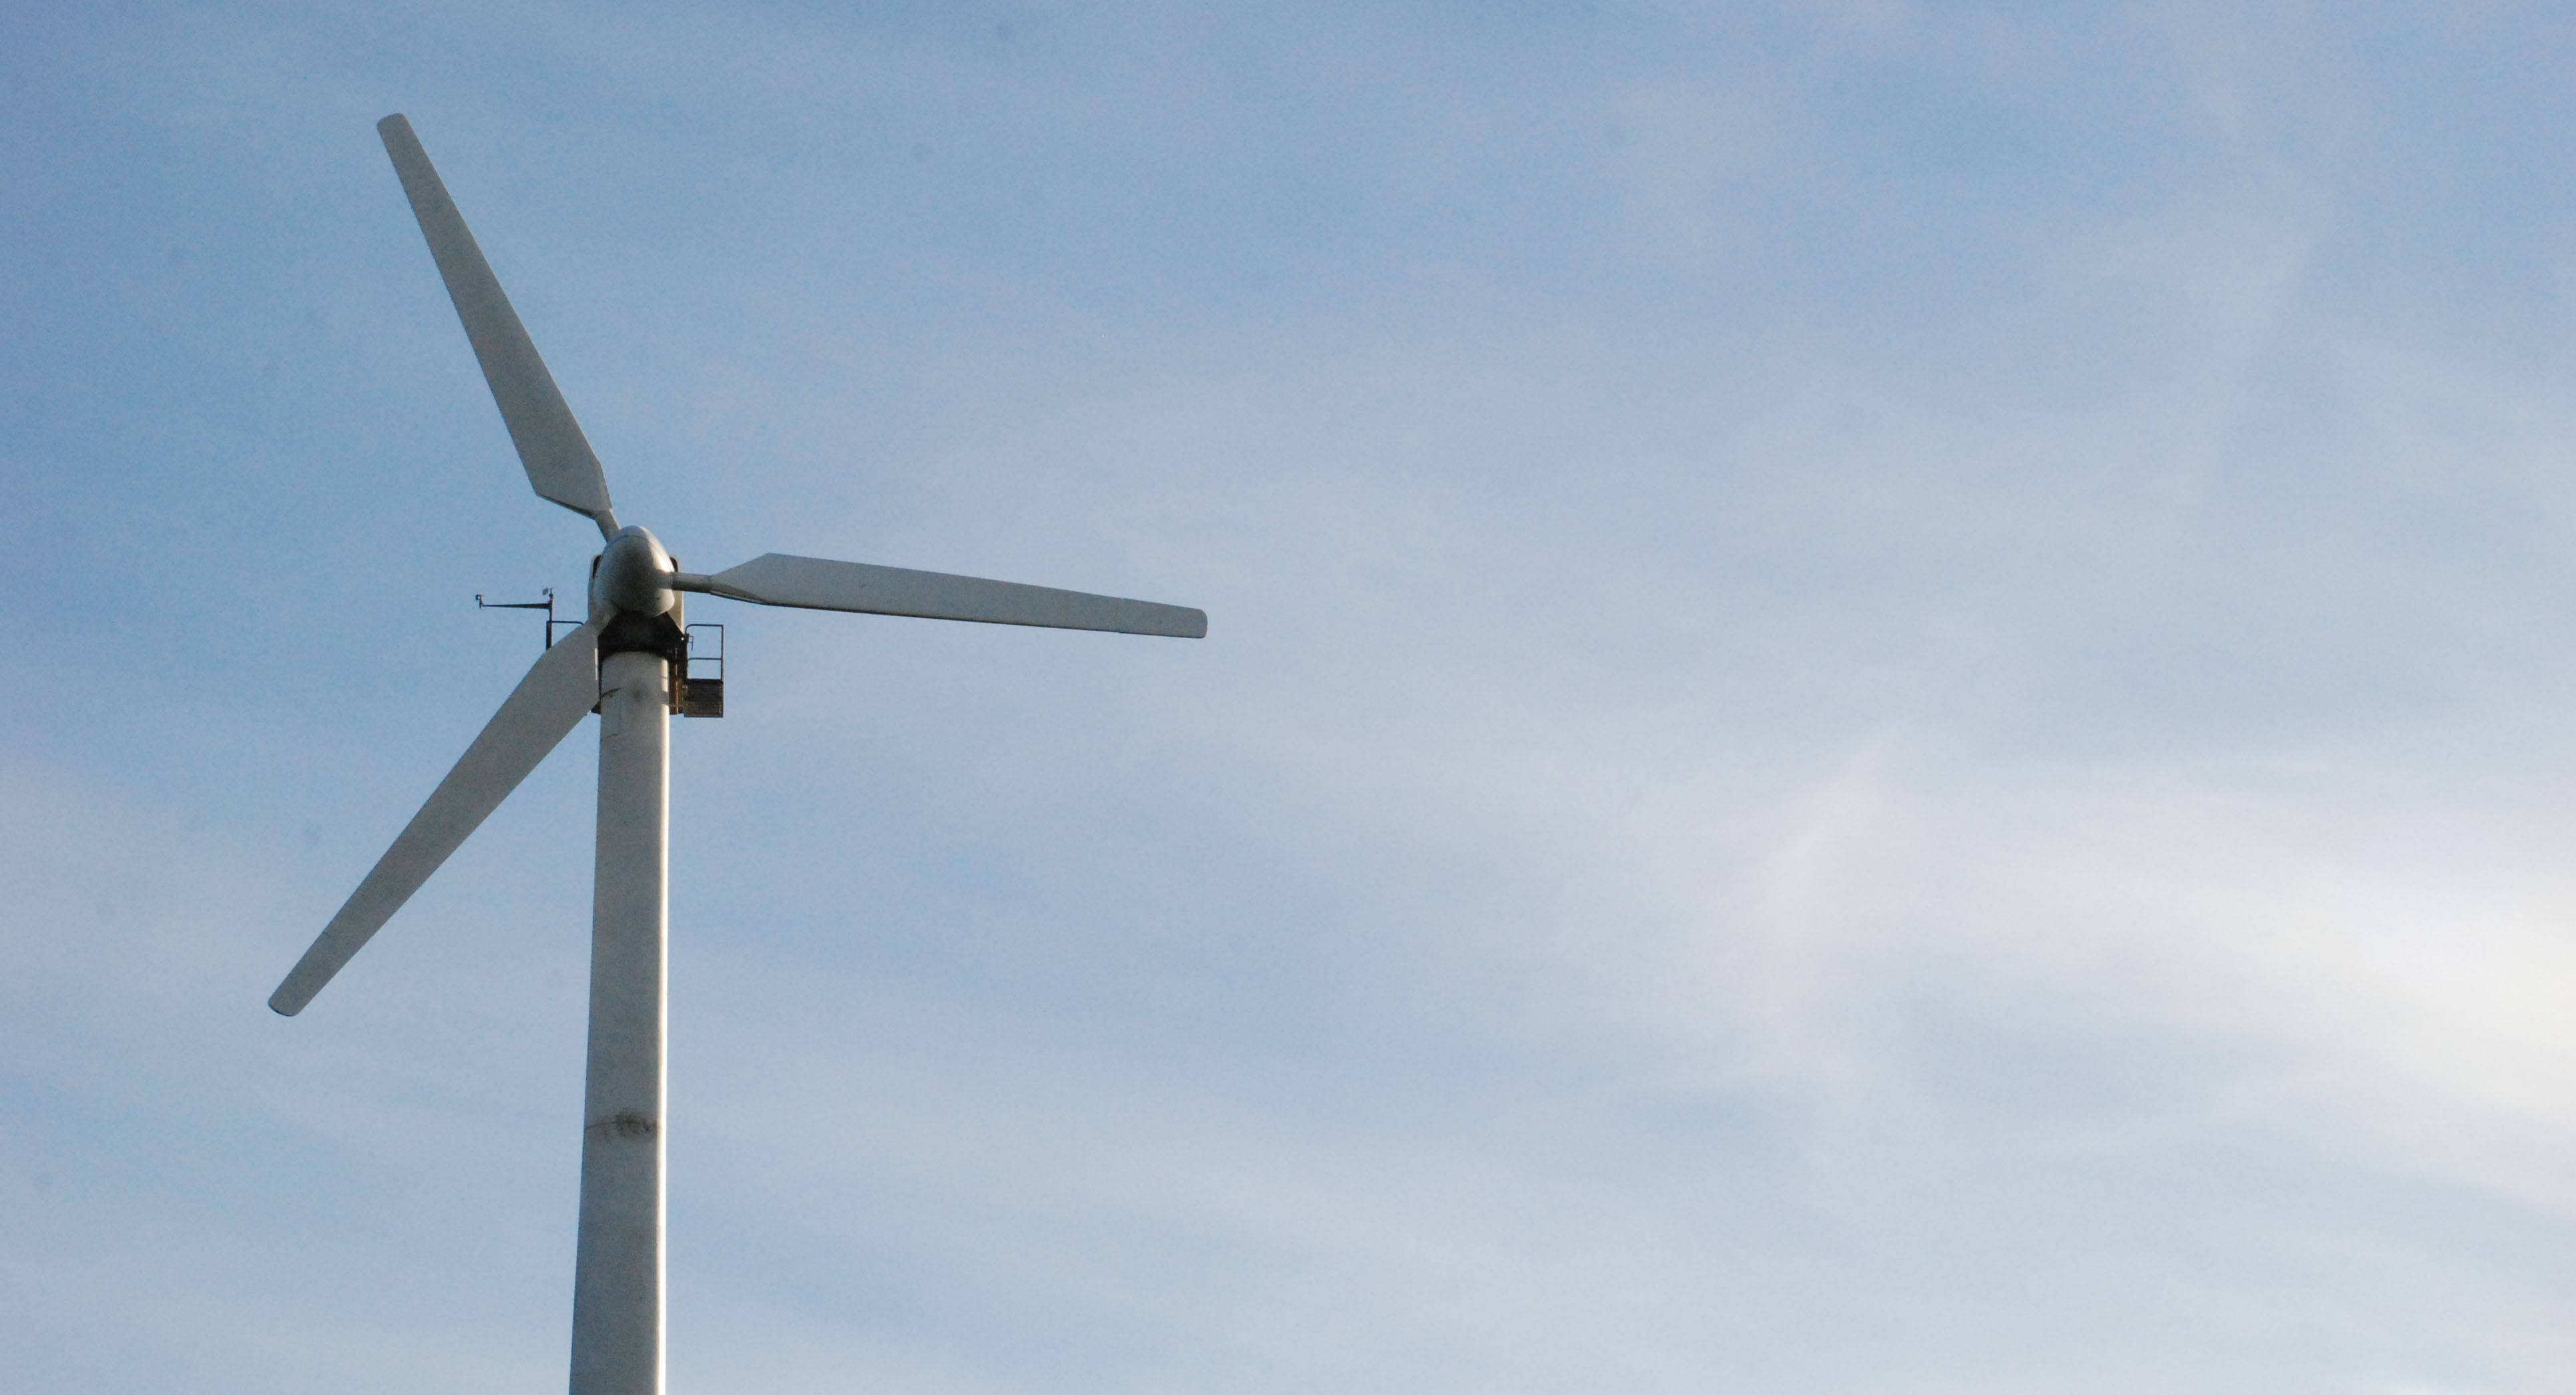 Wind power - Centre for Alternative Technology on